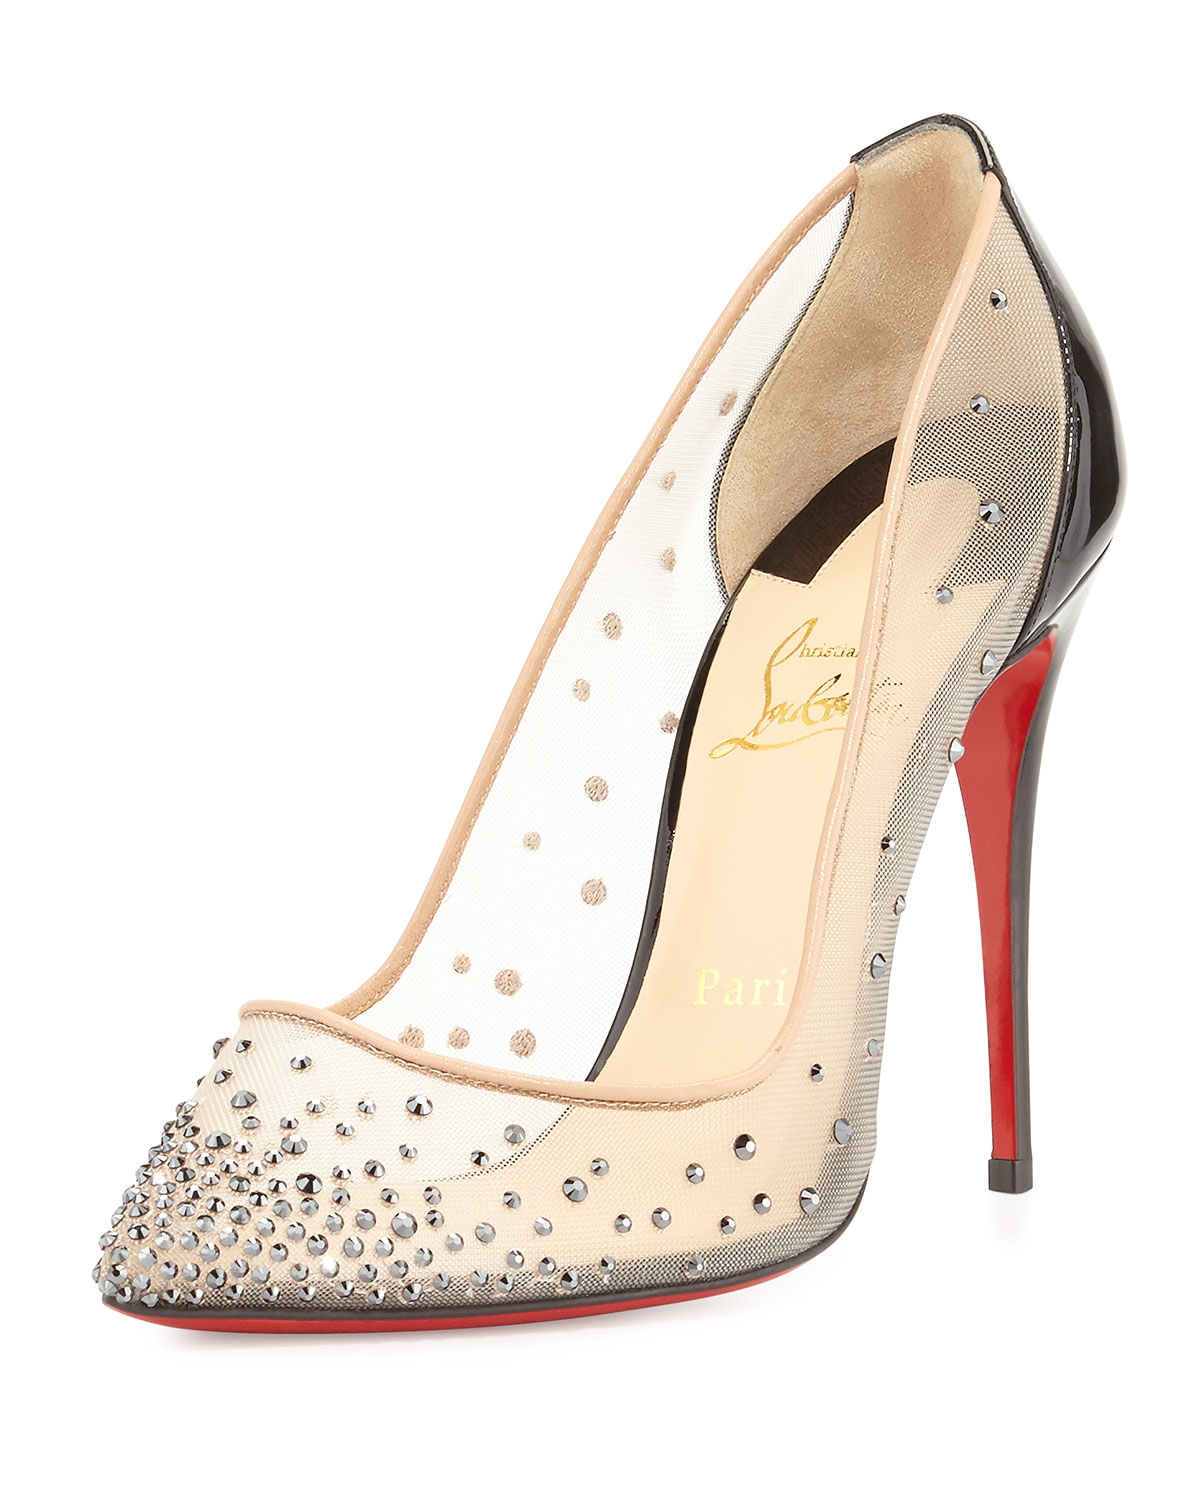 info for ff757 2059d christian louboutin mesh-accented round-toe pumps, sneaker ...